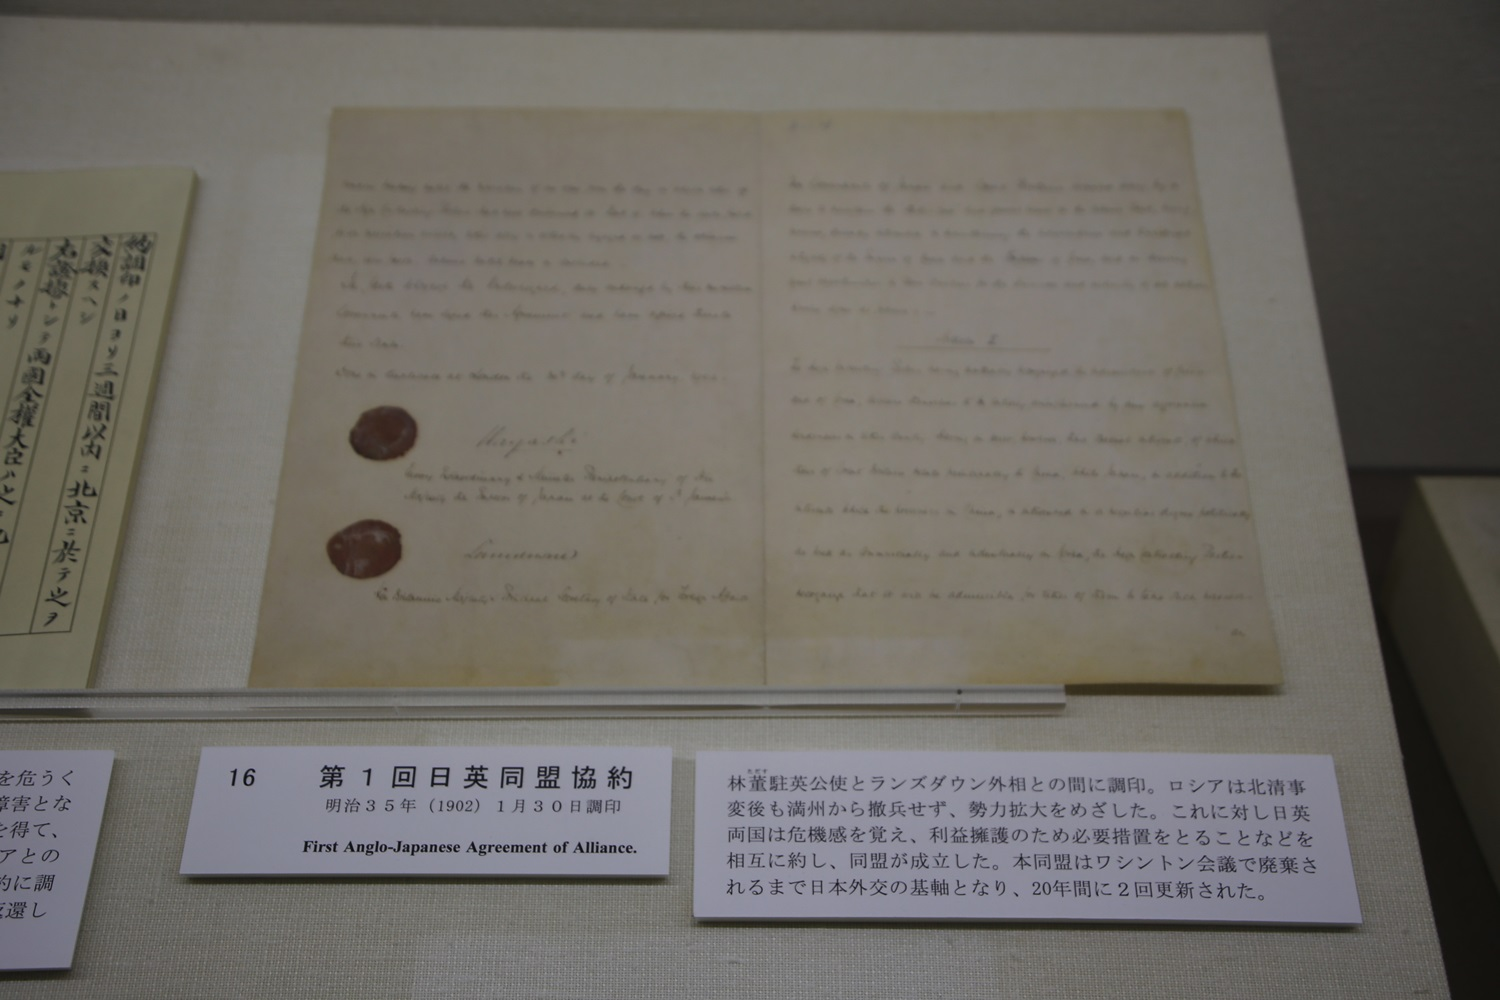 麻布 外交史料館別館 Ministry of Foreign Affairs of Japan (4)First Anglo-Japanese Agreement of Alliance